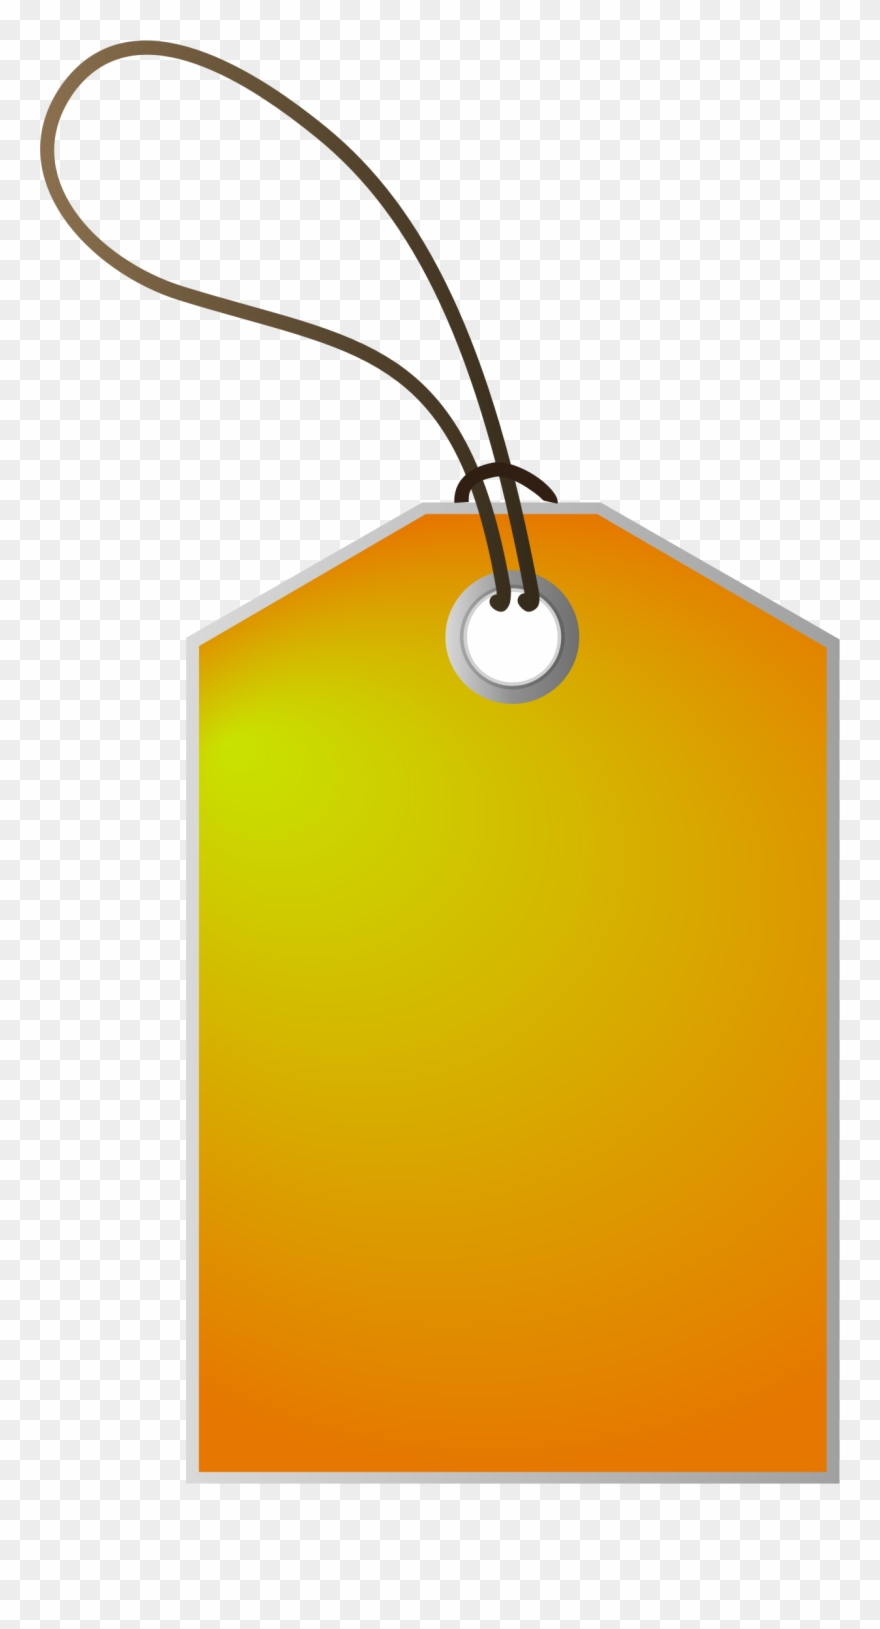 hight resolution of clipart vertical tag png transparent png